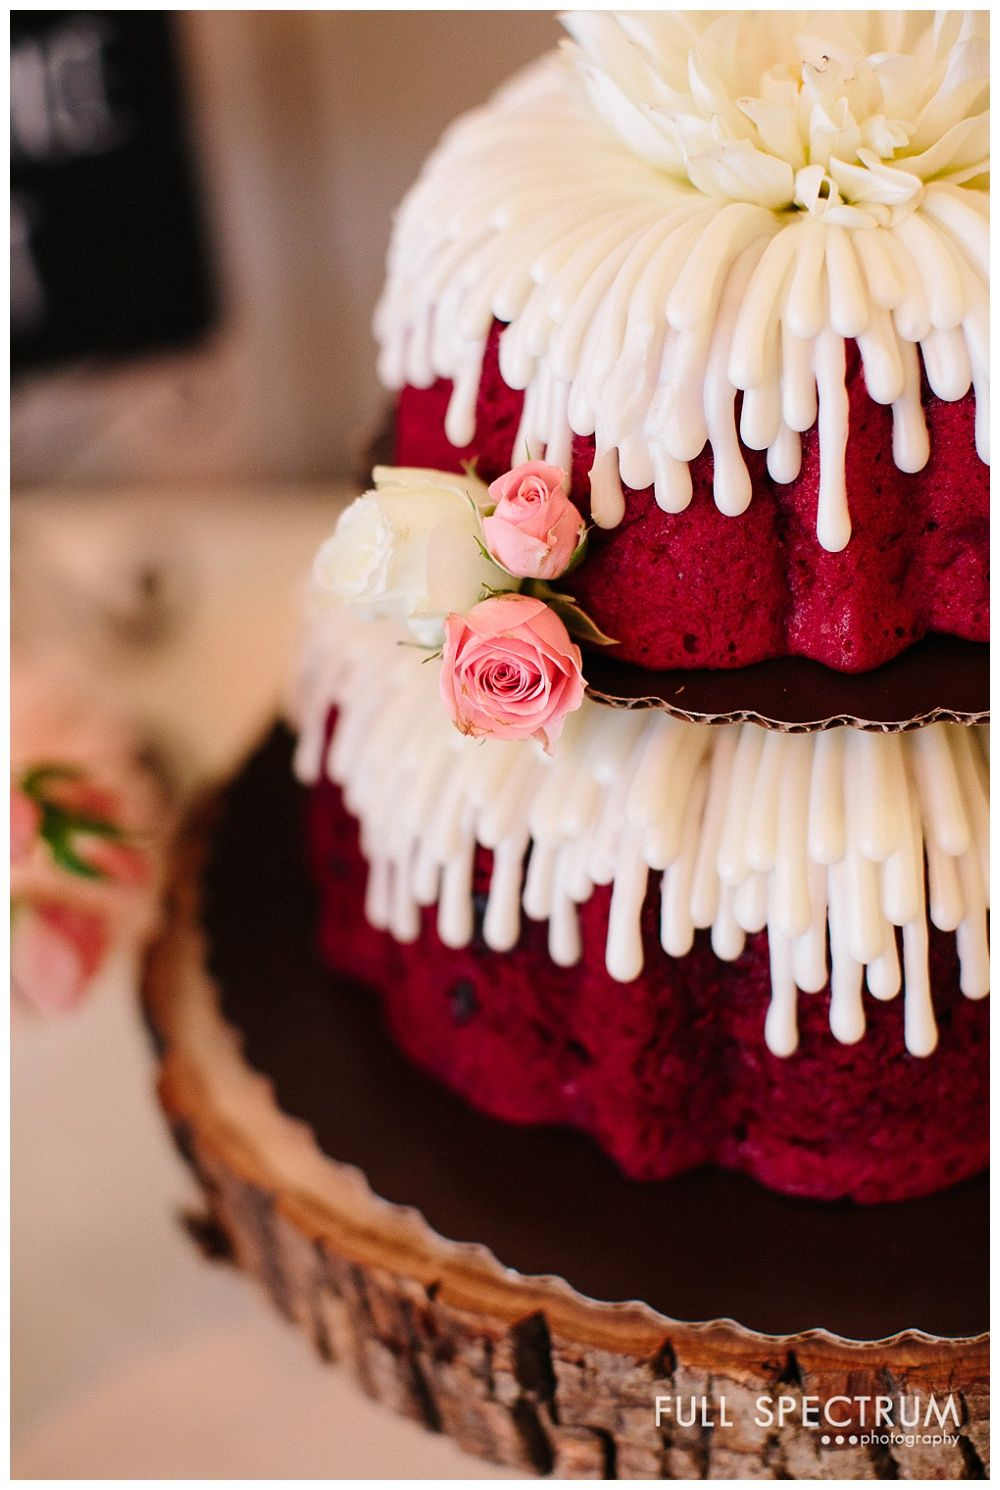 Nothing Bundt Cakes Wedding Cake Strawberry Farms Irvine Full Spectrum Photography